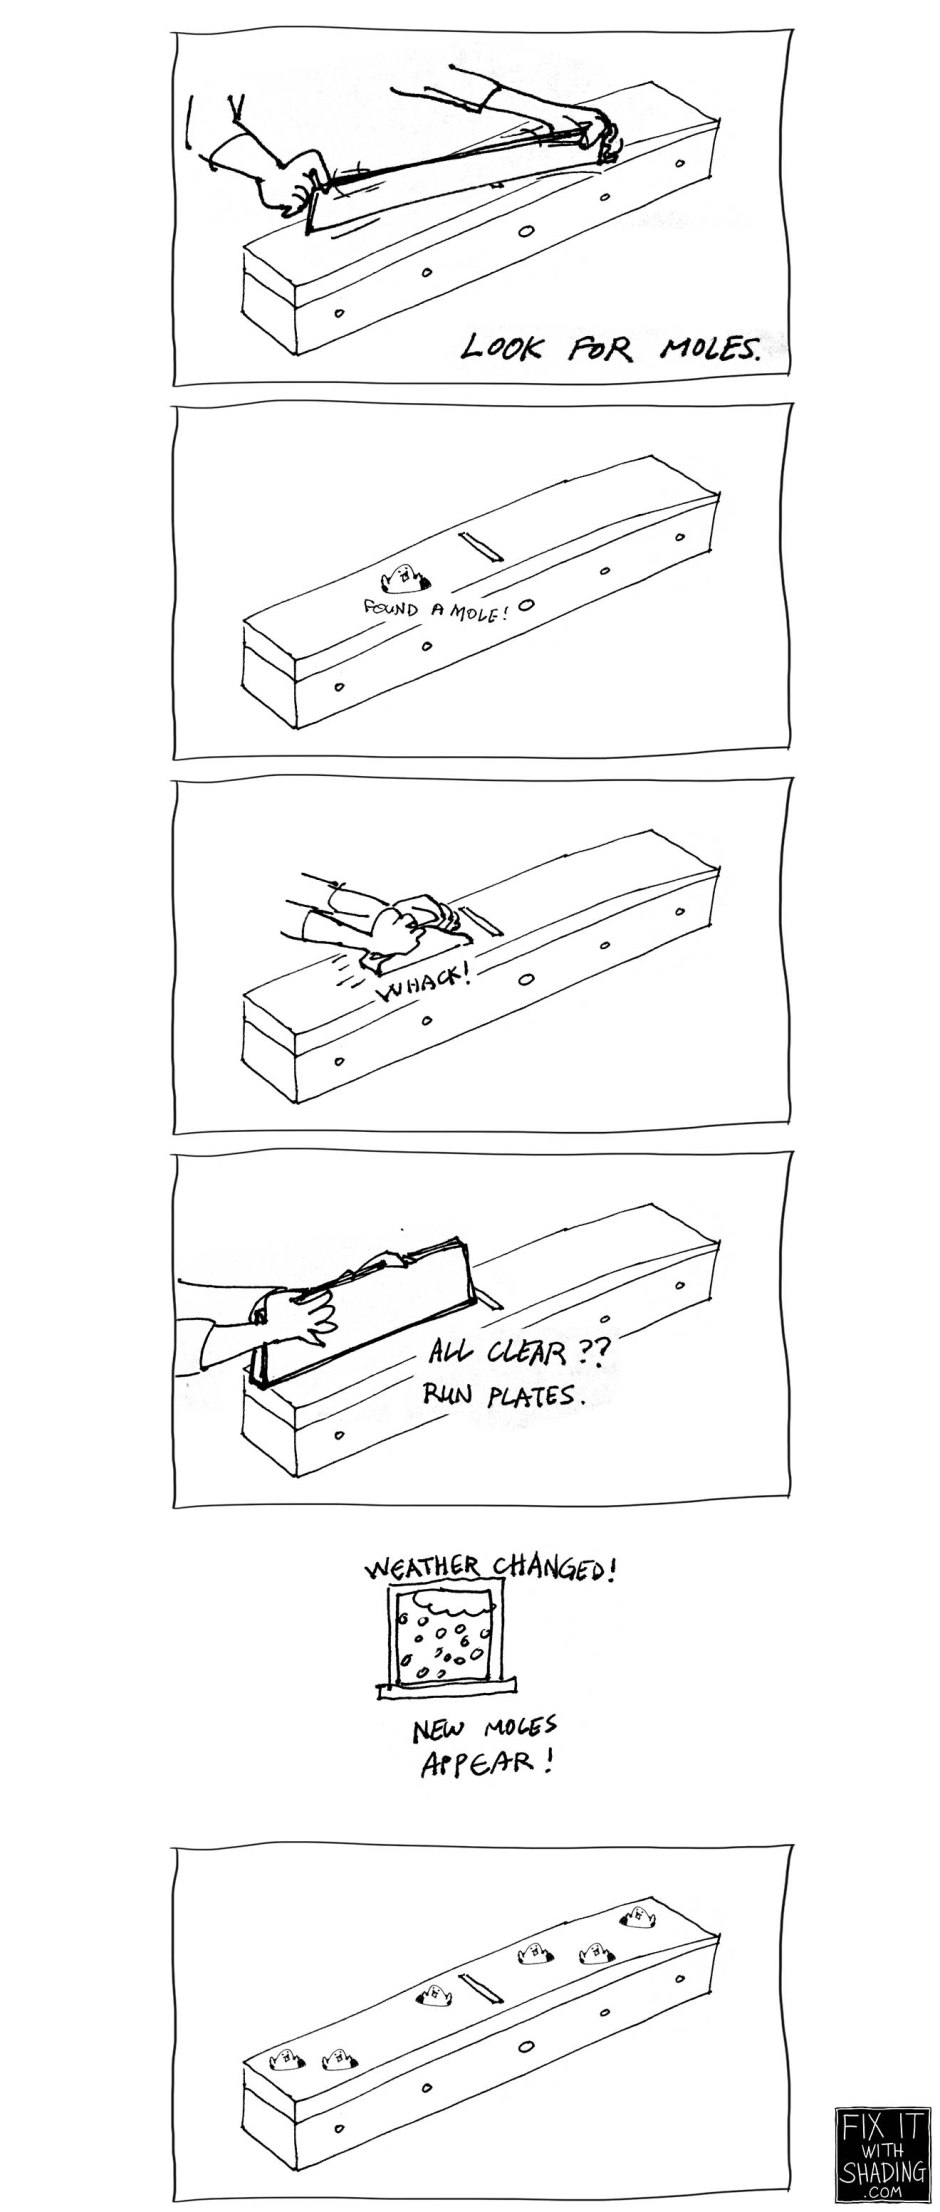 whack-a-mole with the jointing plane